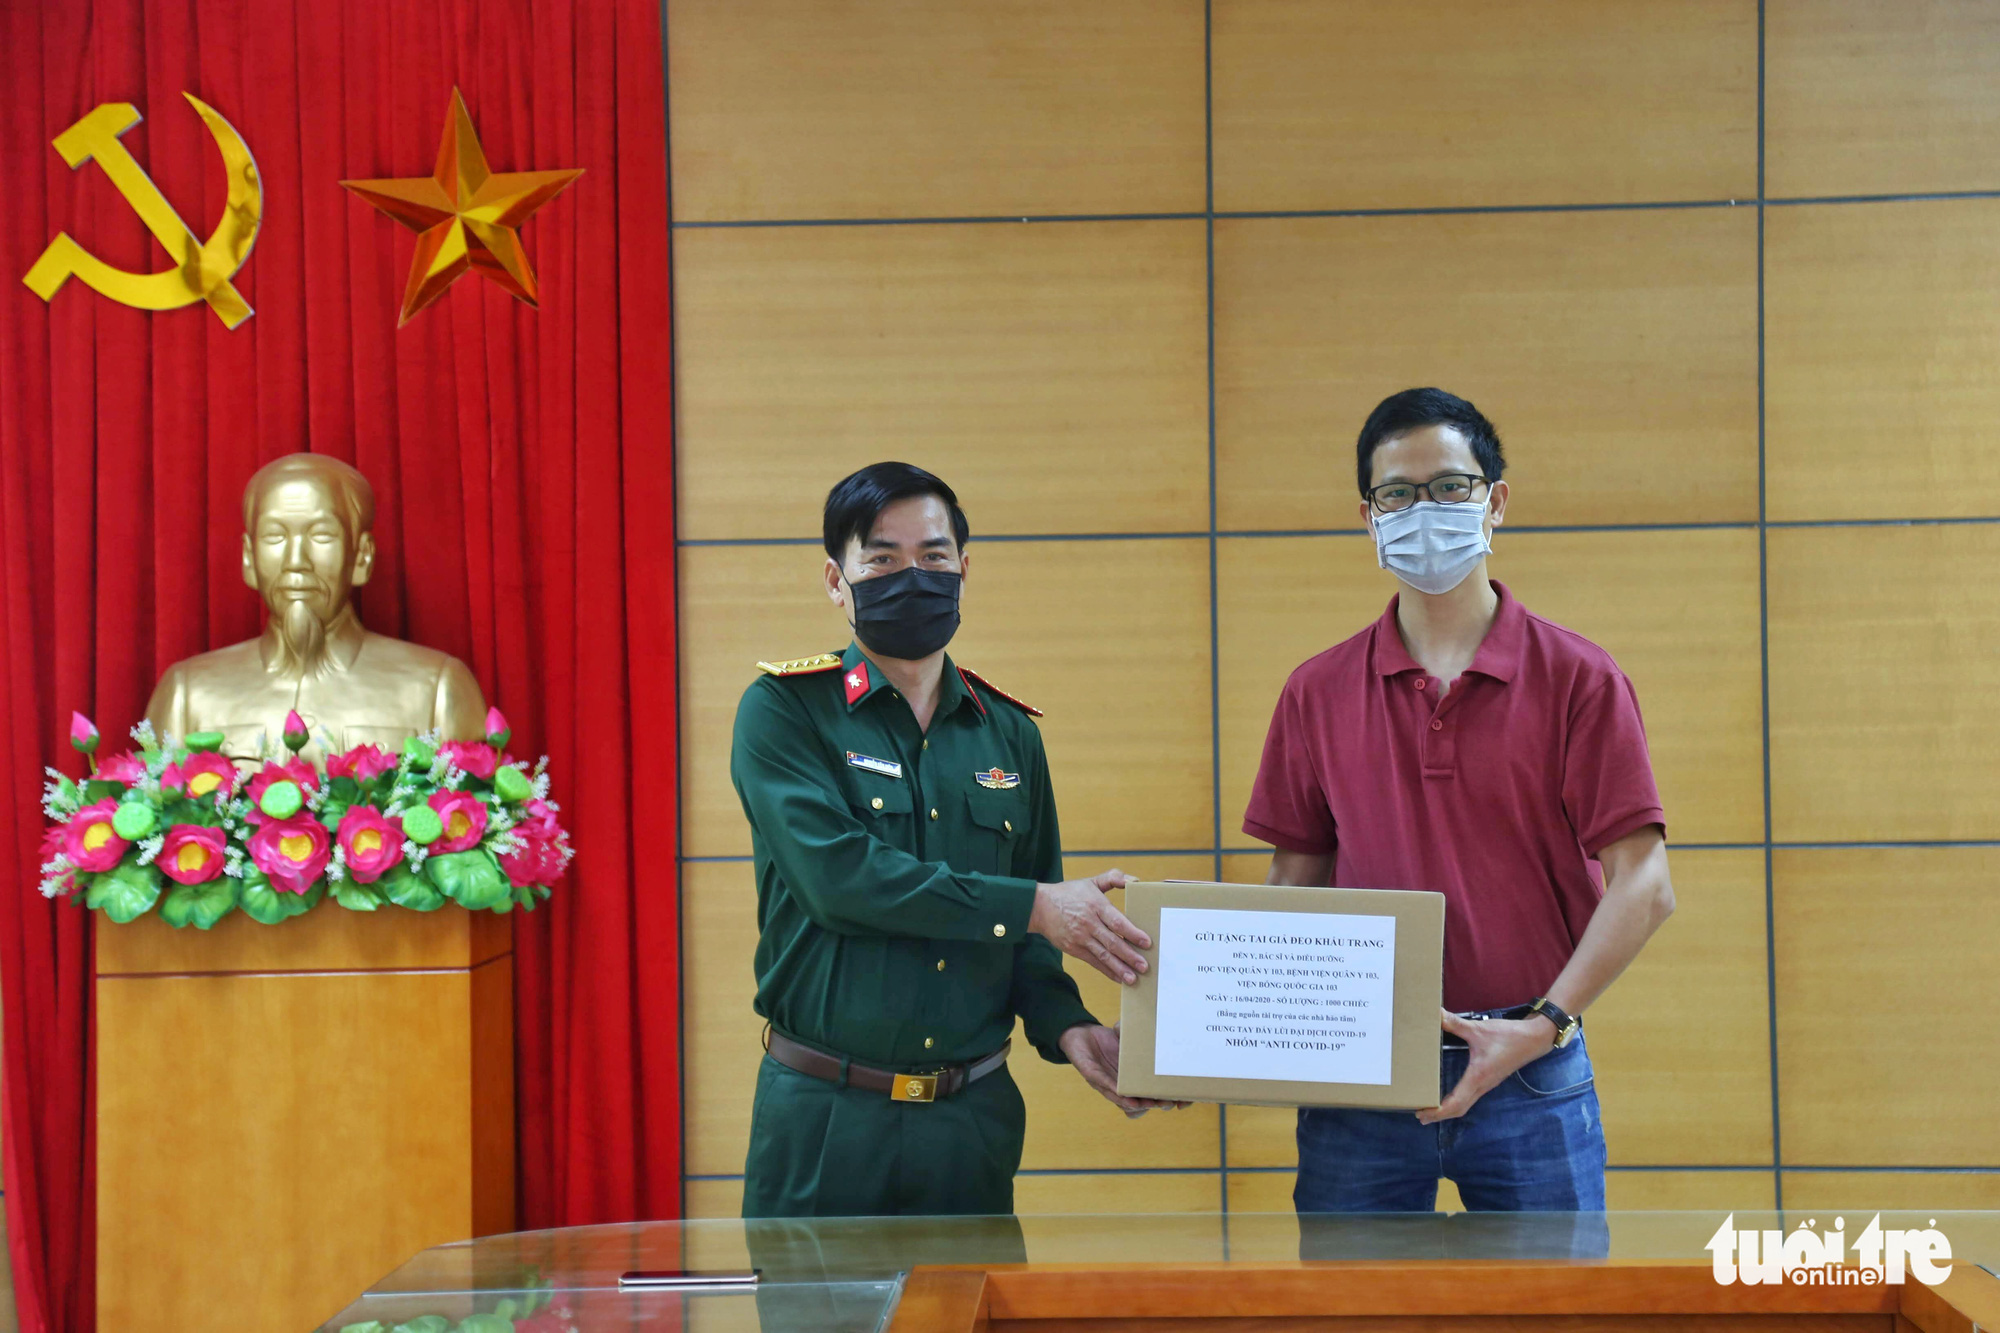 Phan Manh Ha (right), representing the volunteer Anti COVID-19 group, presents 1,000 ears guards to doctors at 103 Military Hospital and the National Institute of Burns in Hanoi, Vietnam, April 16, 2020. Photo: Mai Thuong / Tuoi Tre